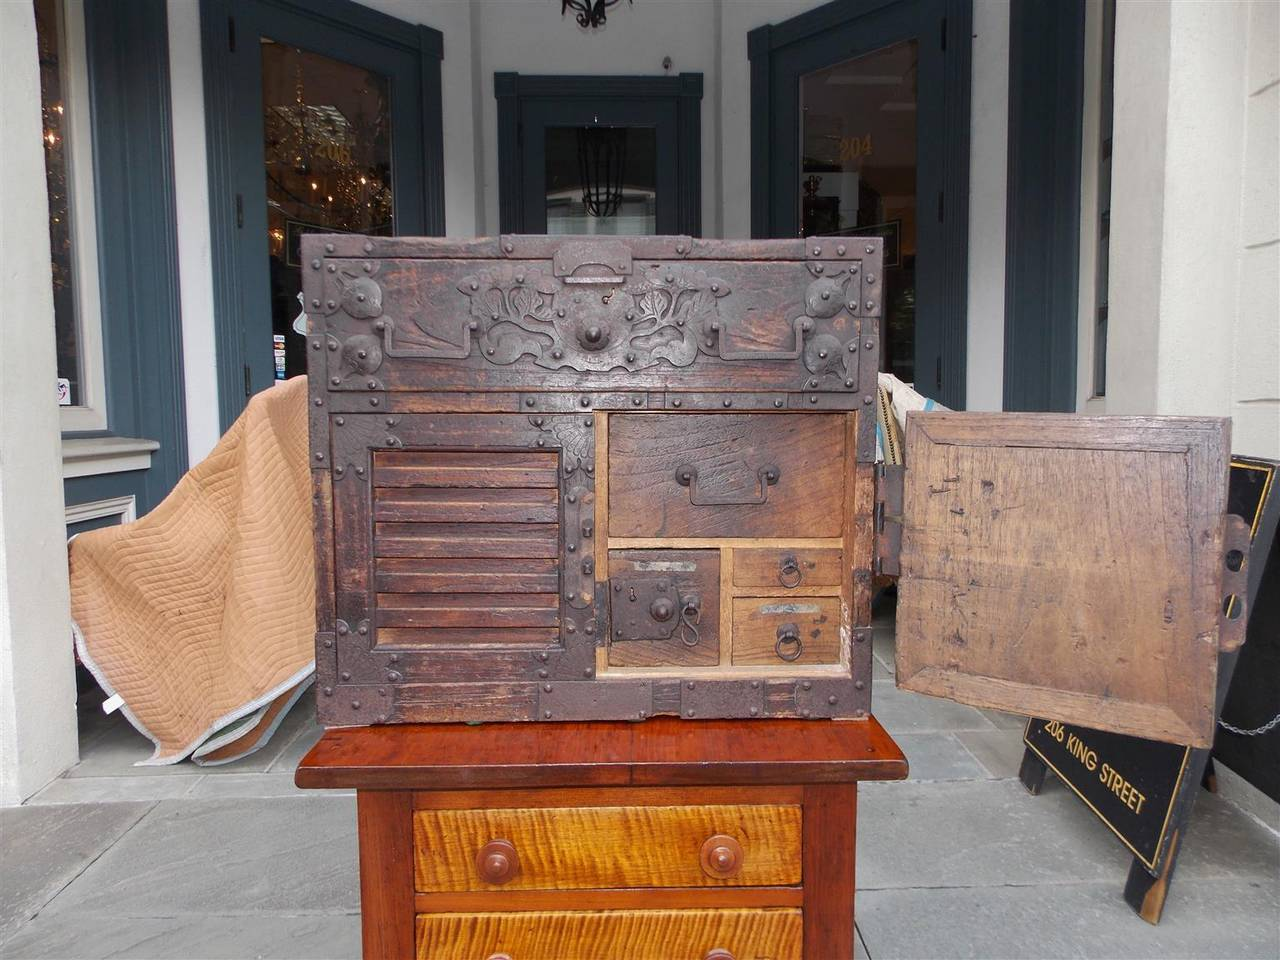 Japanese Military Campaign Document Box Circa 1770 At 1stdibs